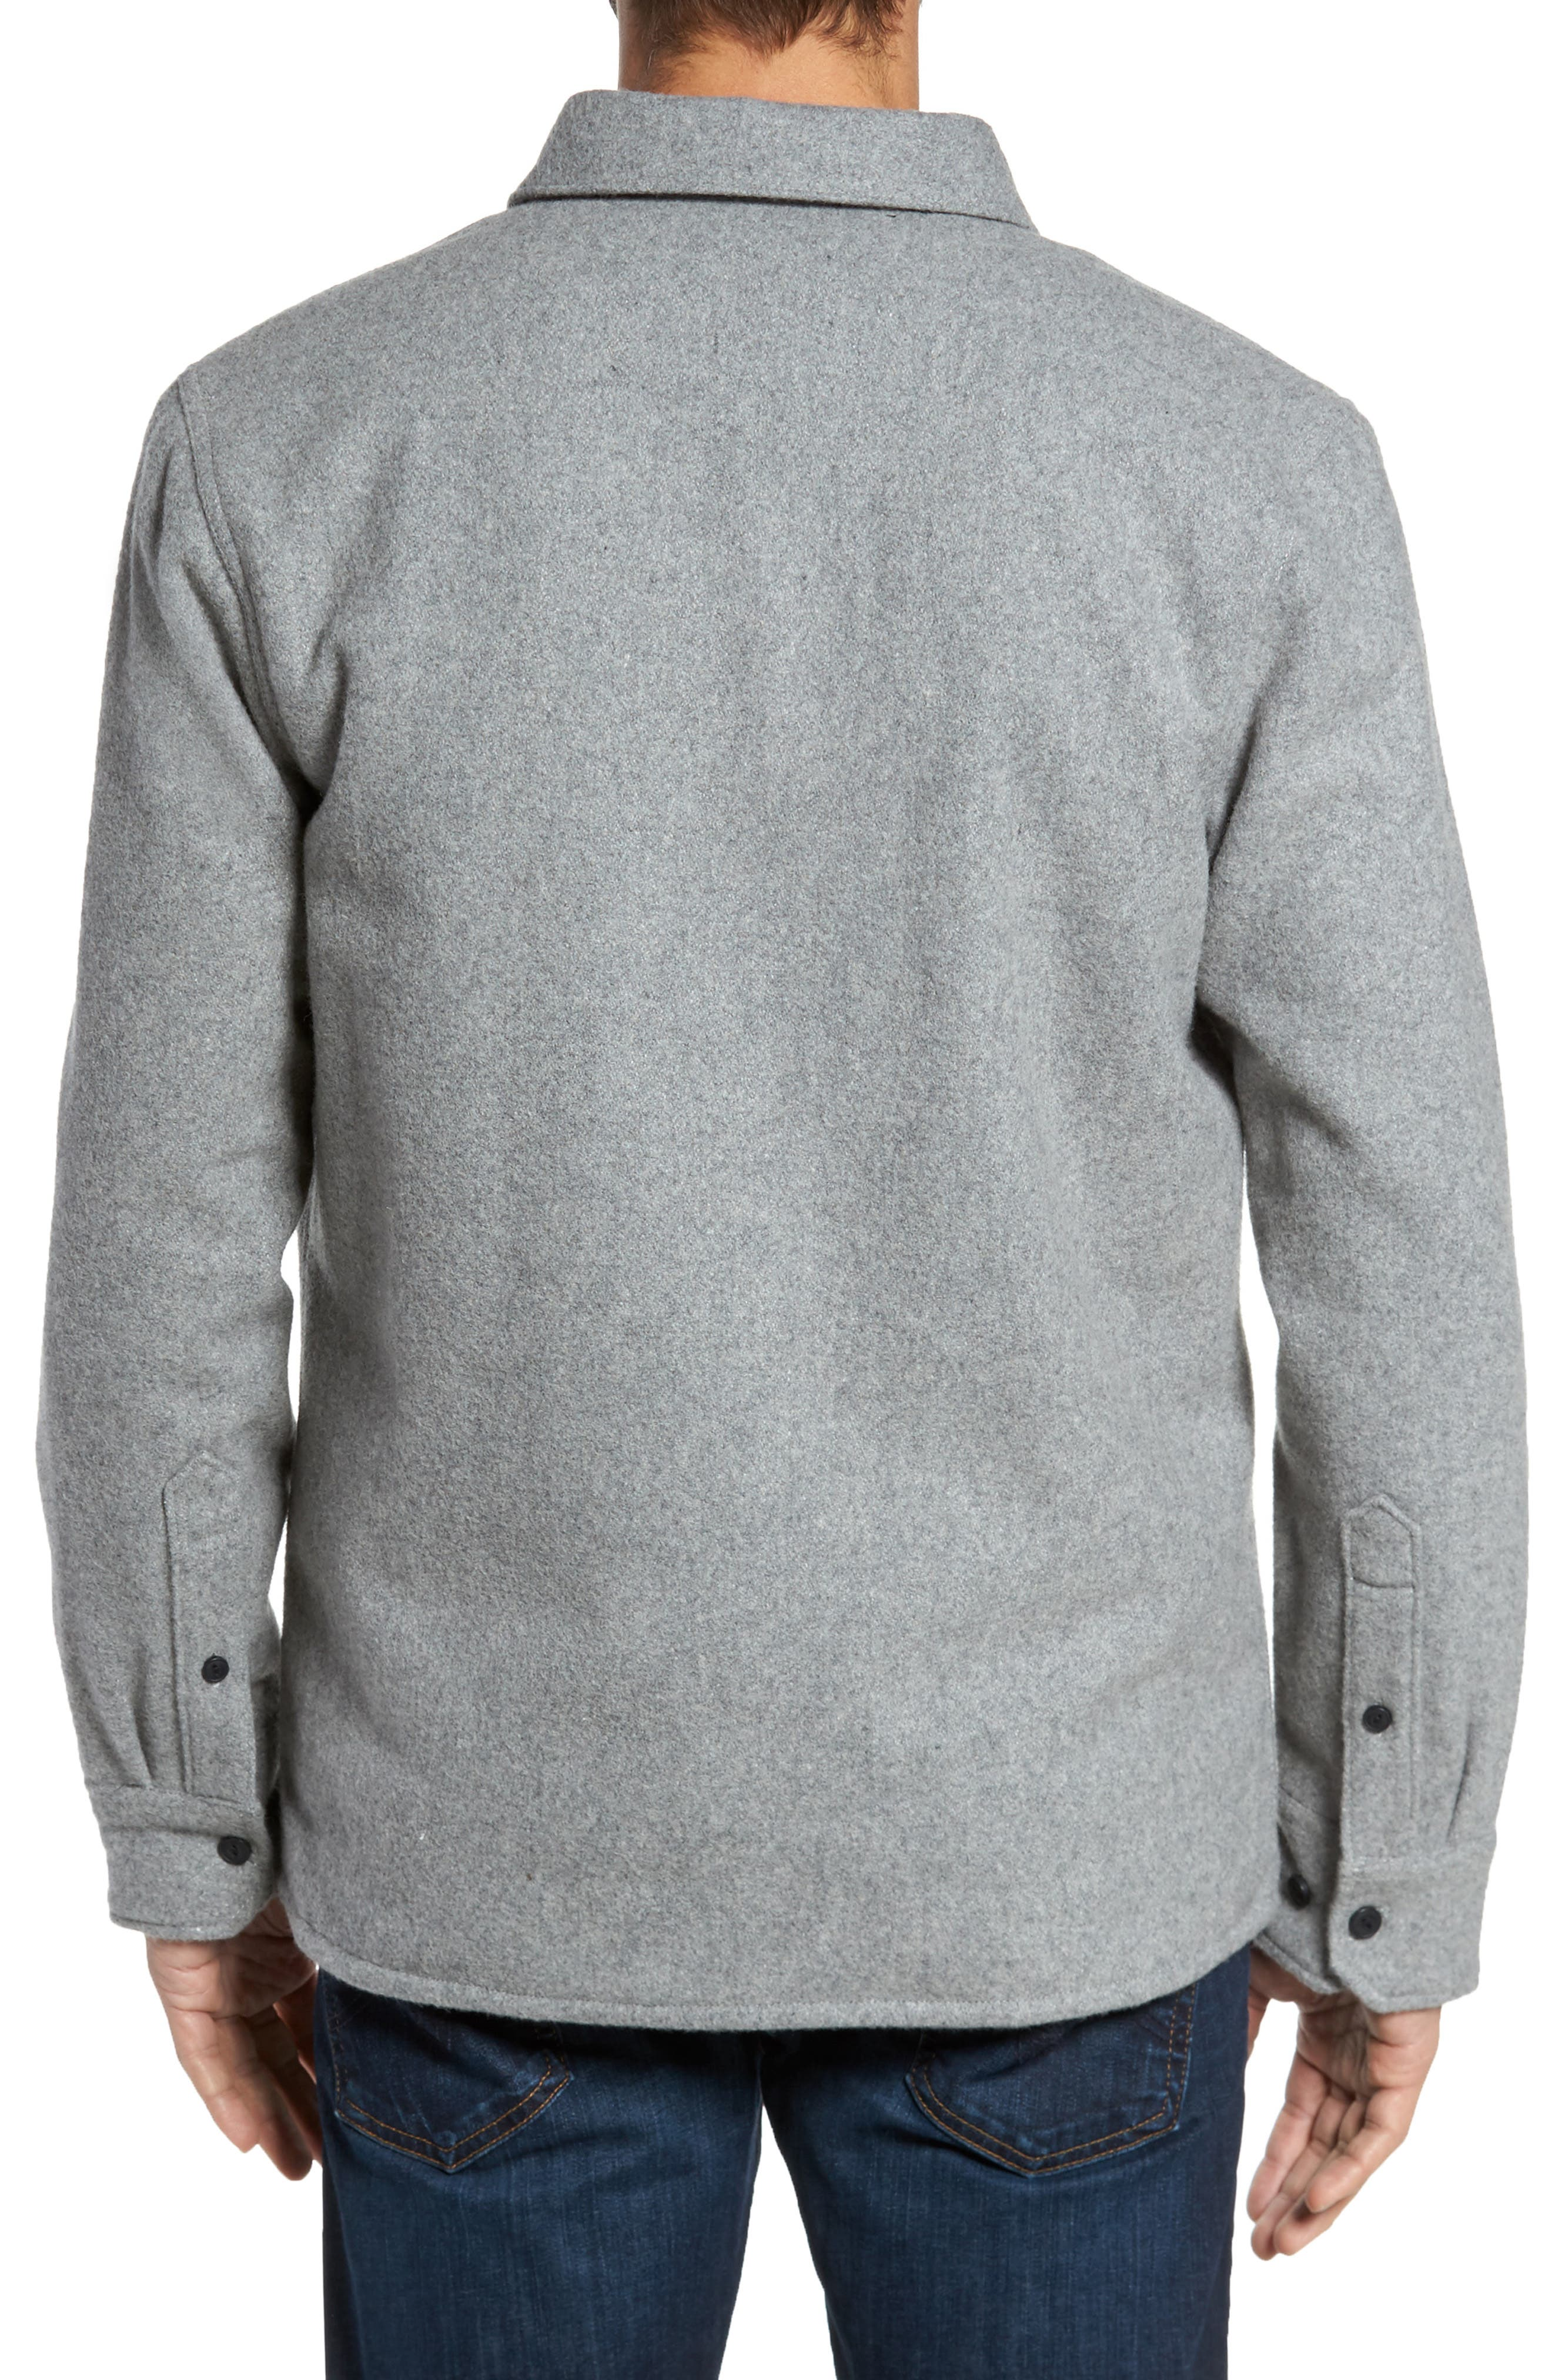 Shirt Jacket,                             Alternate thumbnail 2, color,                             Heather Grey